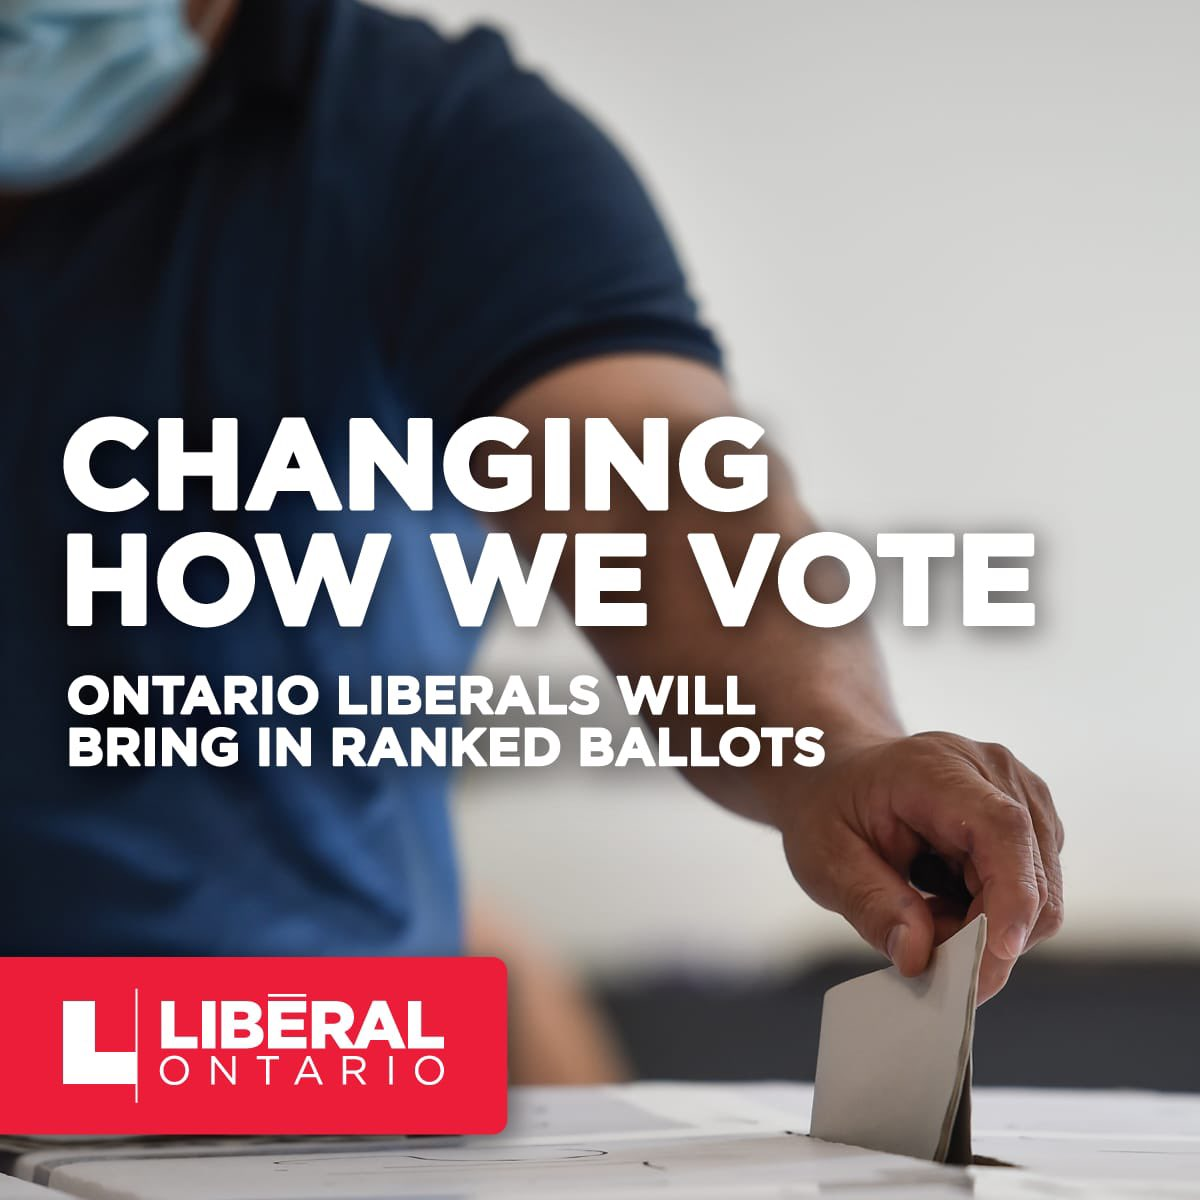 Ontario Liberals will introduce ranked ballots. It will mean that parties & leaders will have to compete for voters' second choices. It won't make sense to demonize one another, rewarding those who find common ground, and speak to voters' hopes, not their fears.  #OLPAGM #onpoli